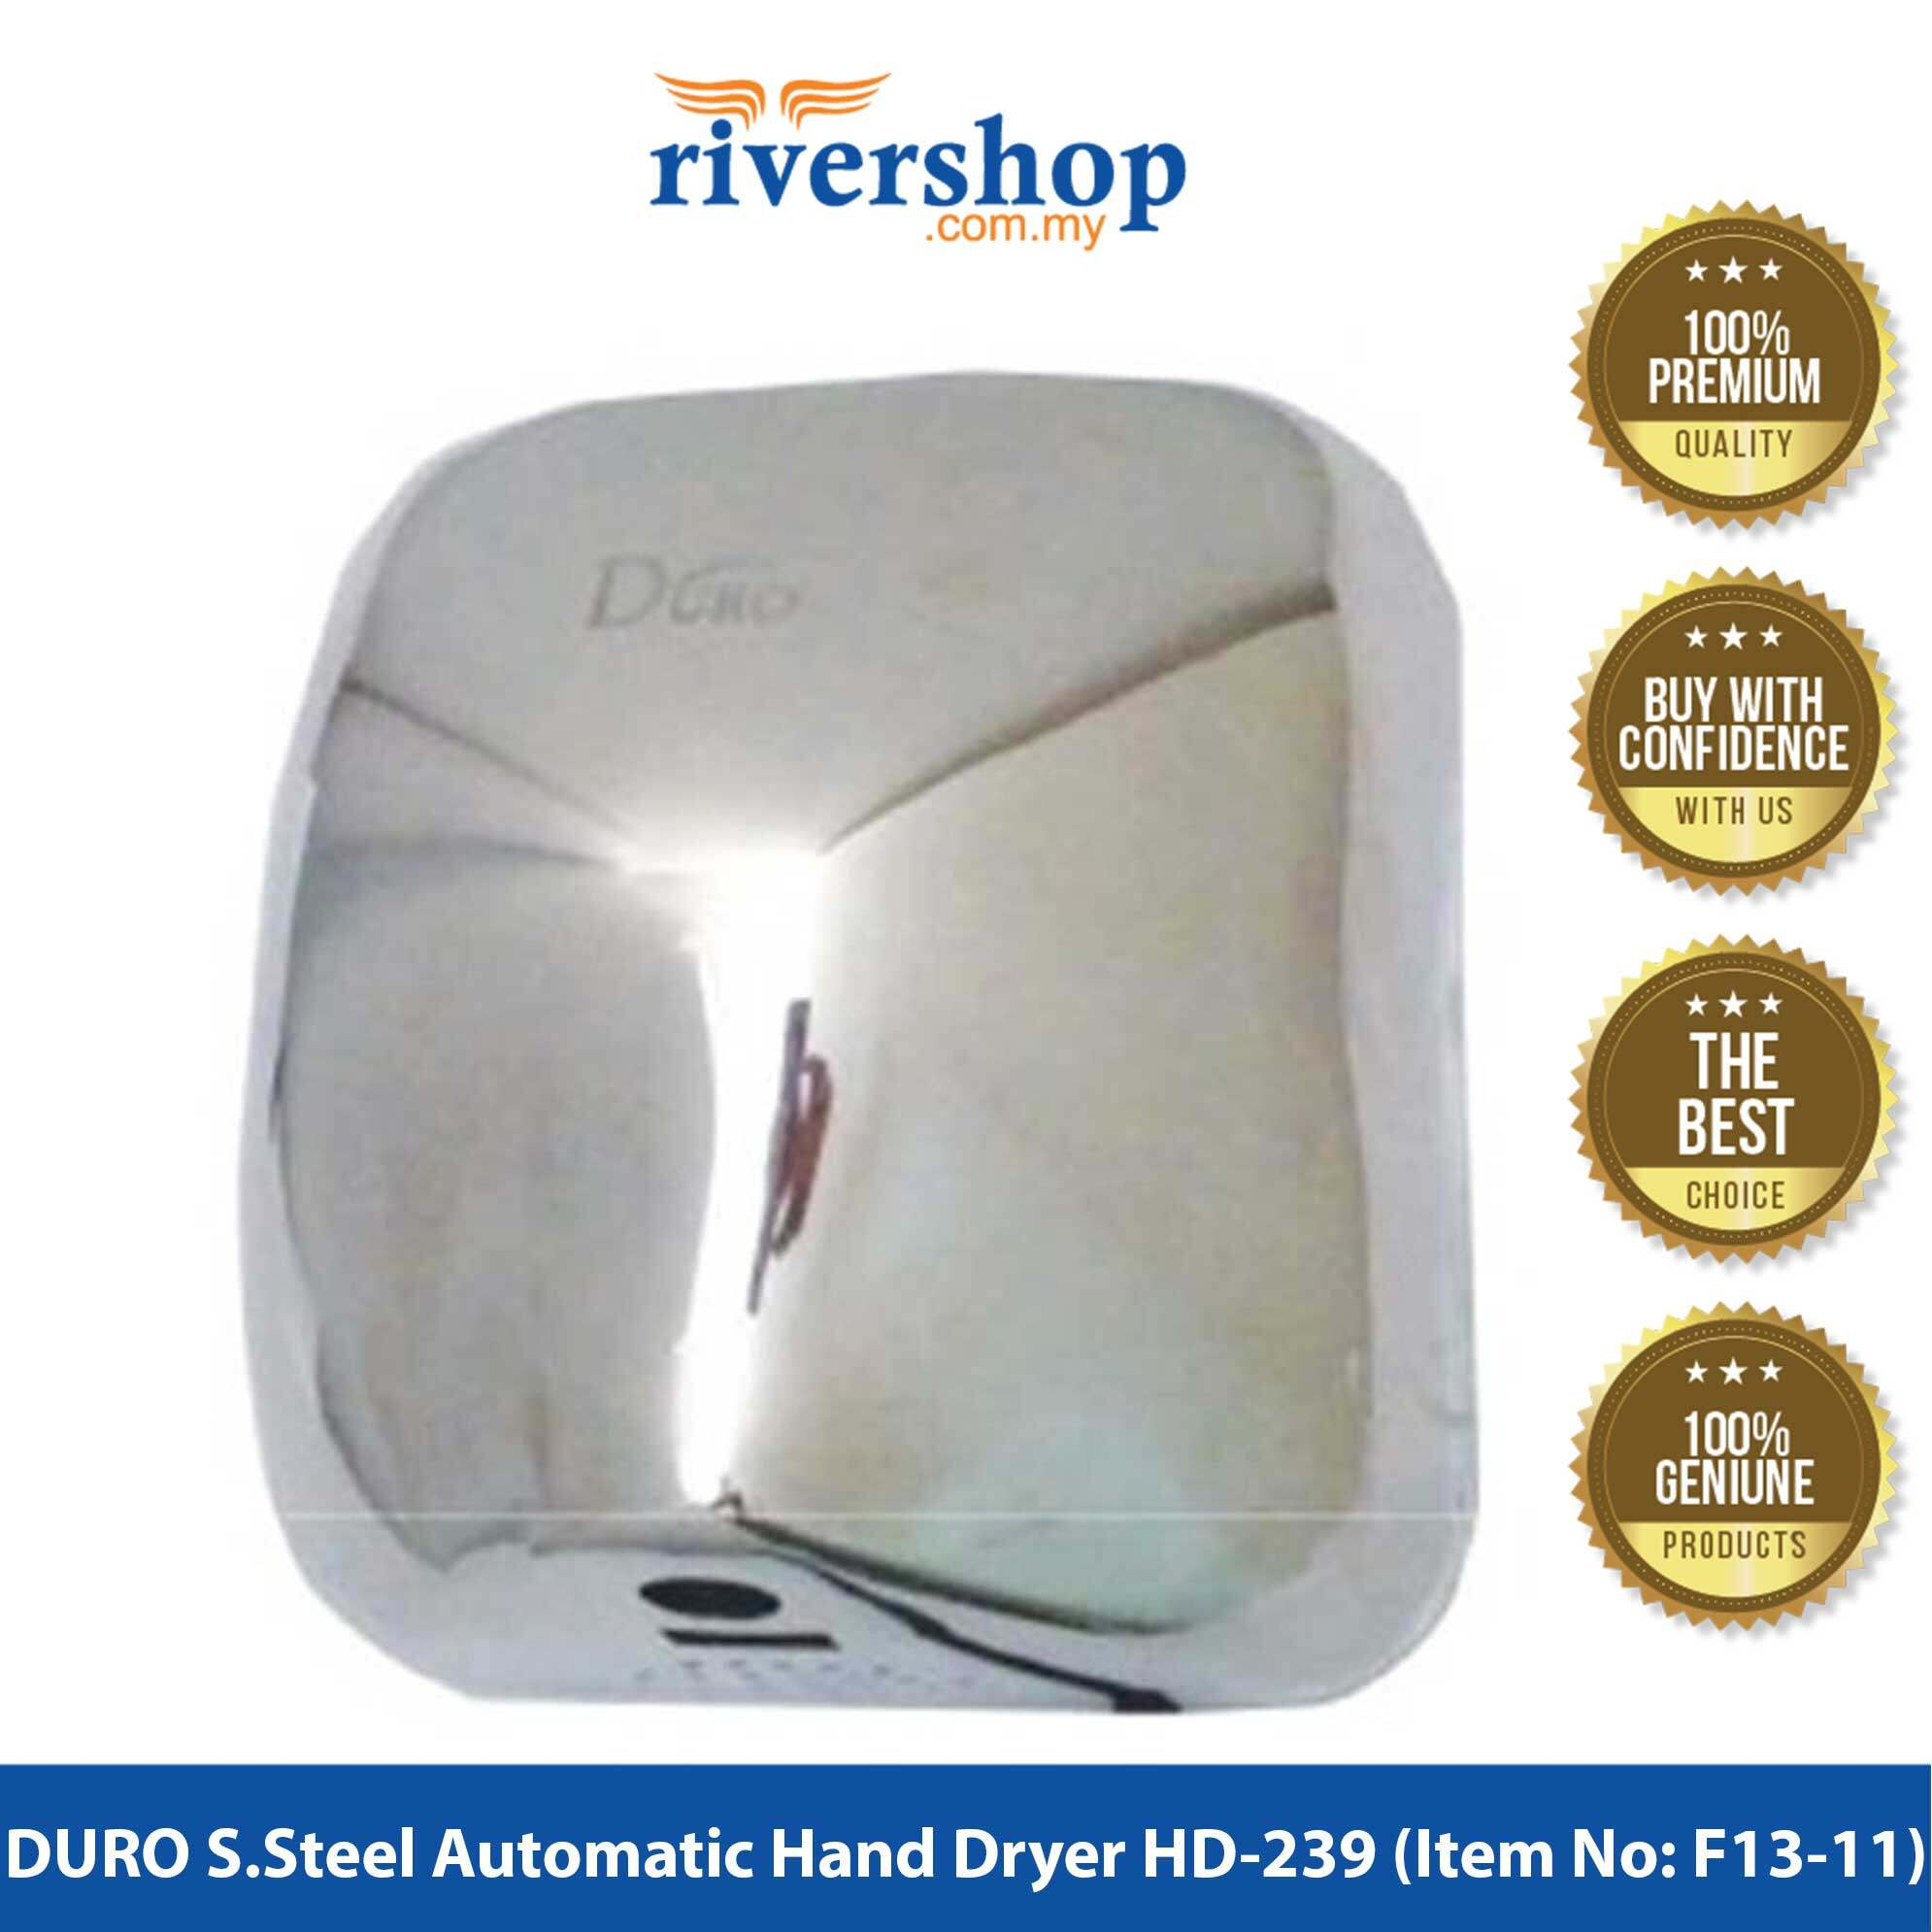 DURO Stainless Steel Automatic Hand Dryer HD 239 Household Hotel Automatic Infared Sensor Hand Dryer Bathroom Hands Drying Device